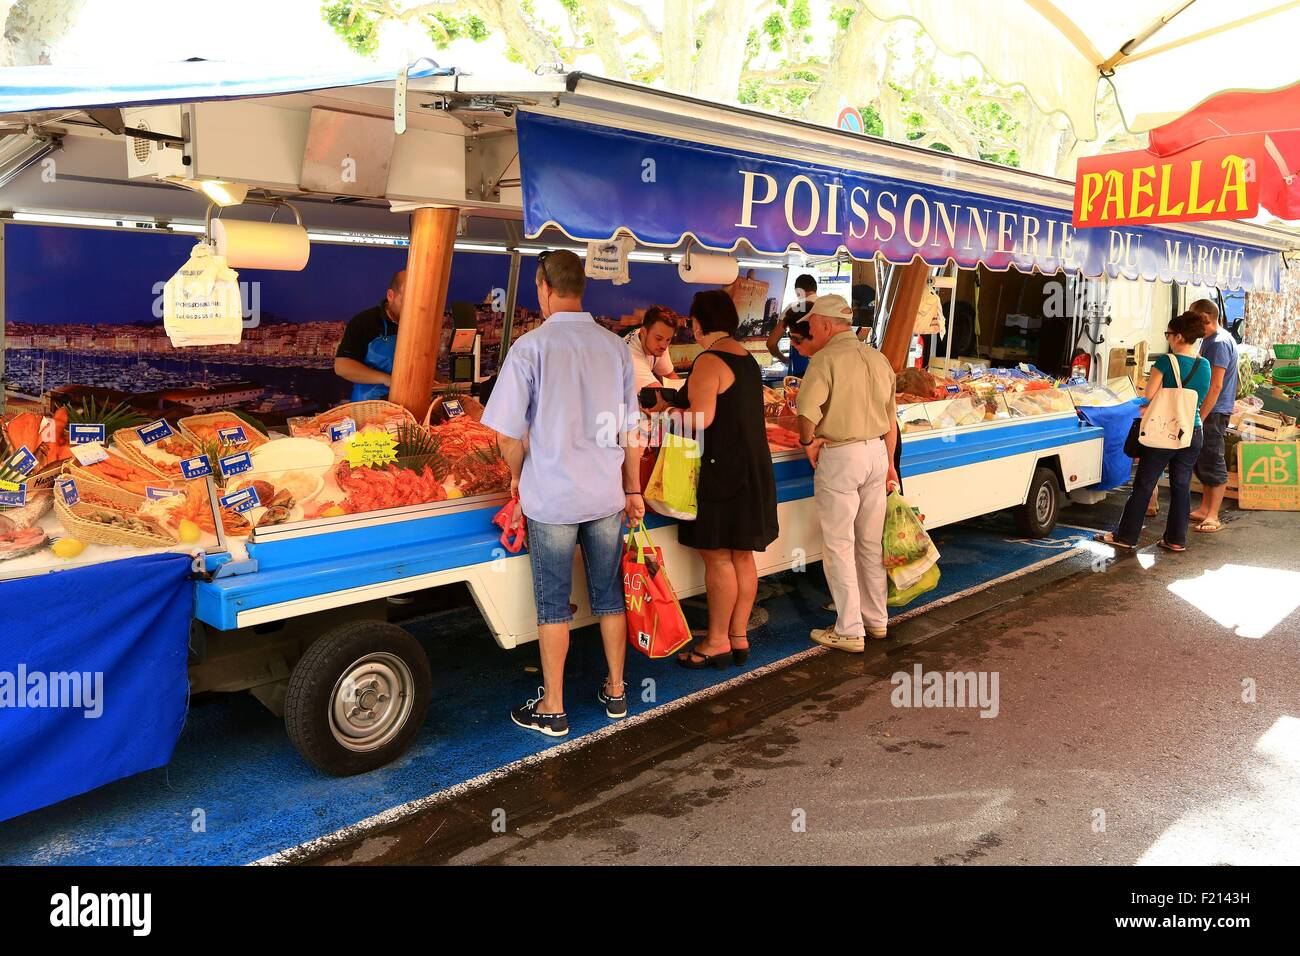 Bedoin France Stock Photos & Bedoin France Stock Images - Alamy